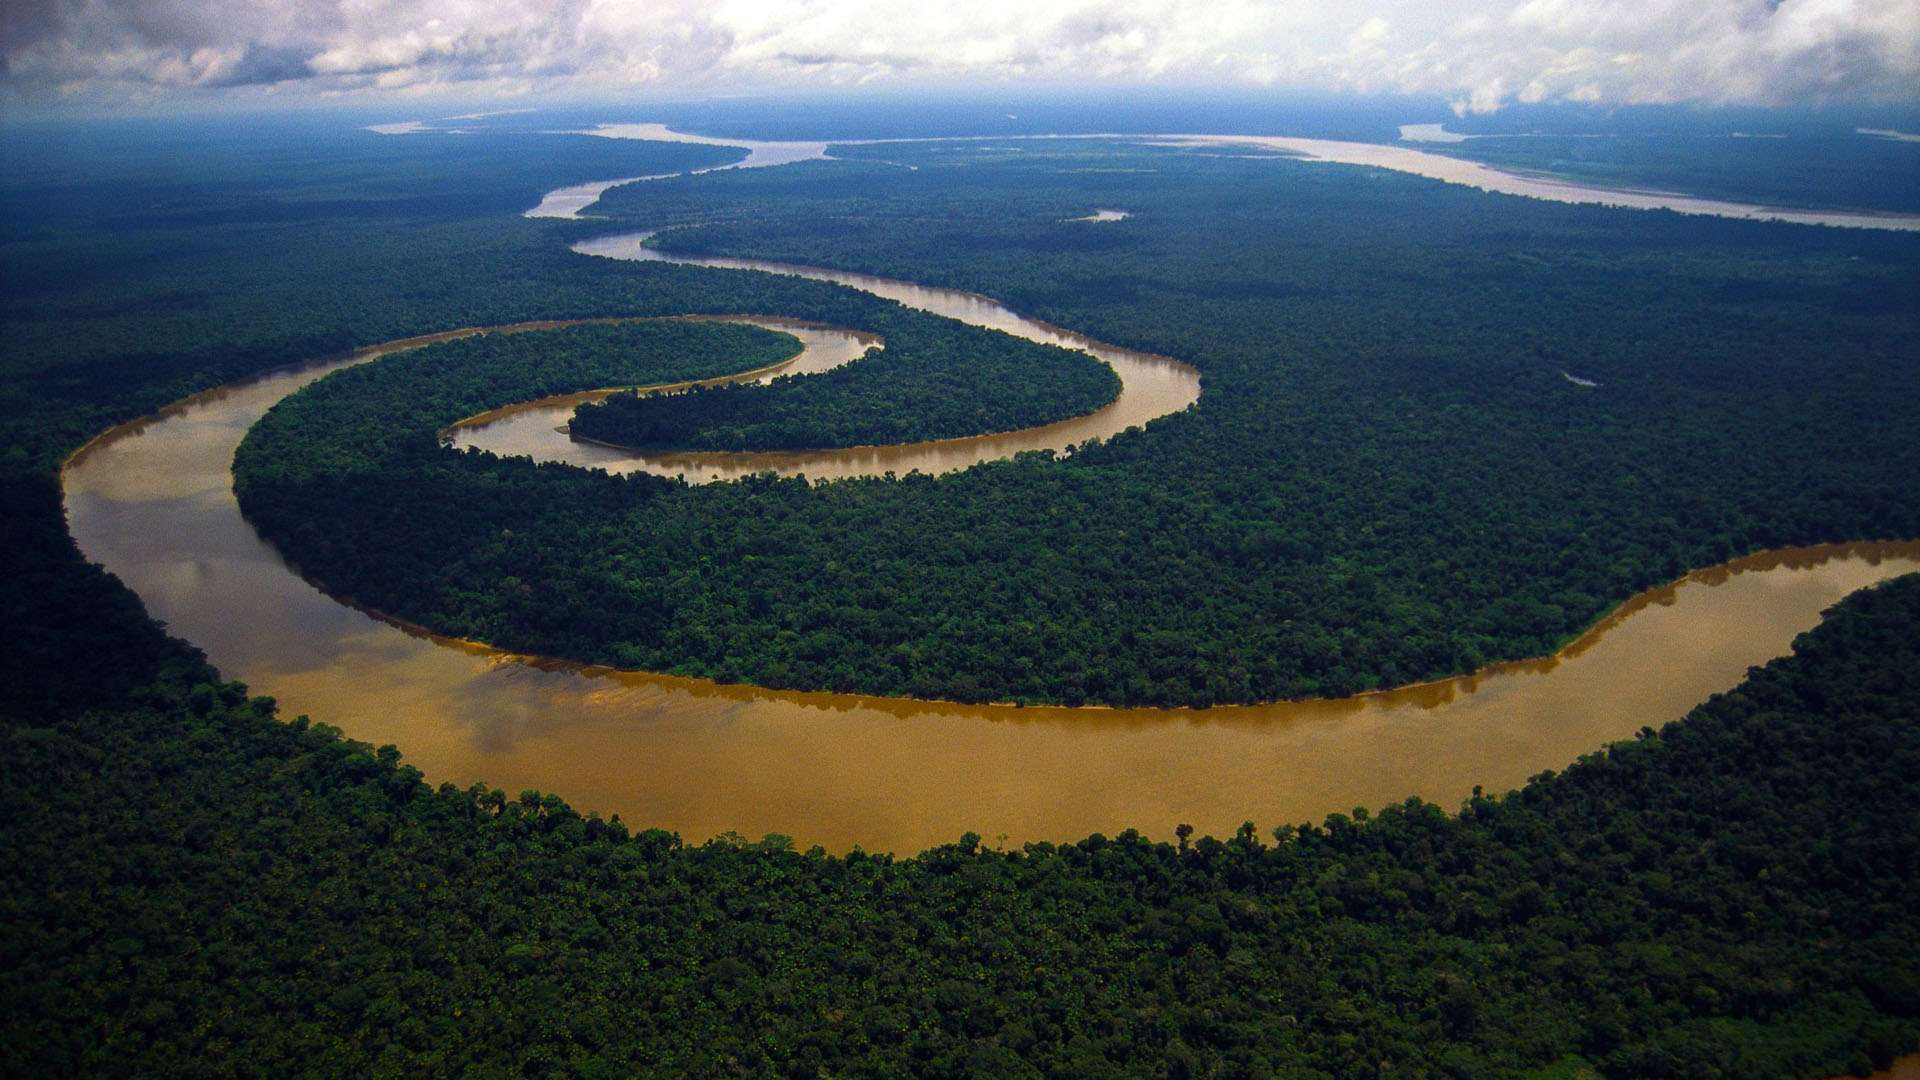 Amazon-River-in-Brazil-1920x1080-wallpaper-wp3402320